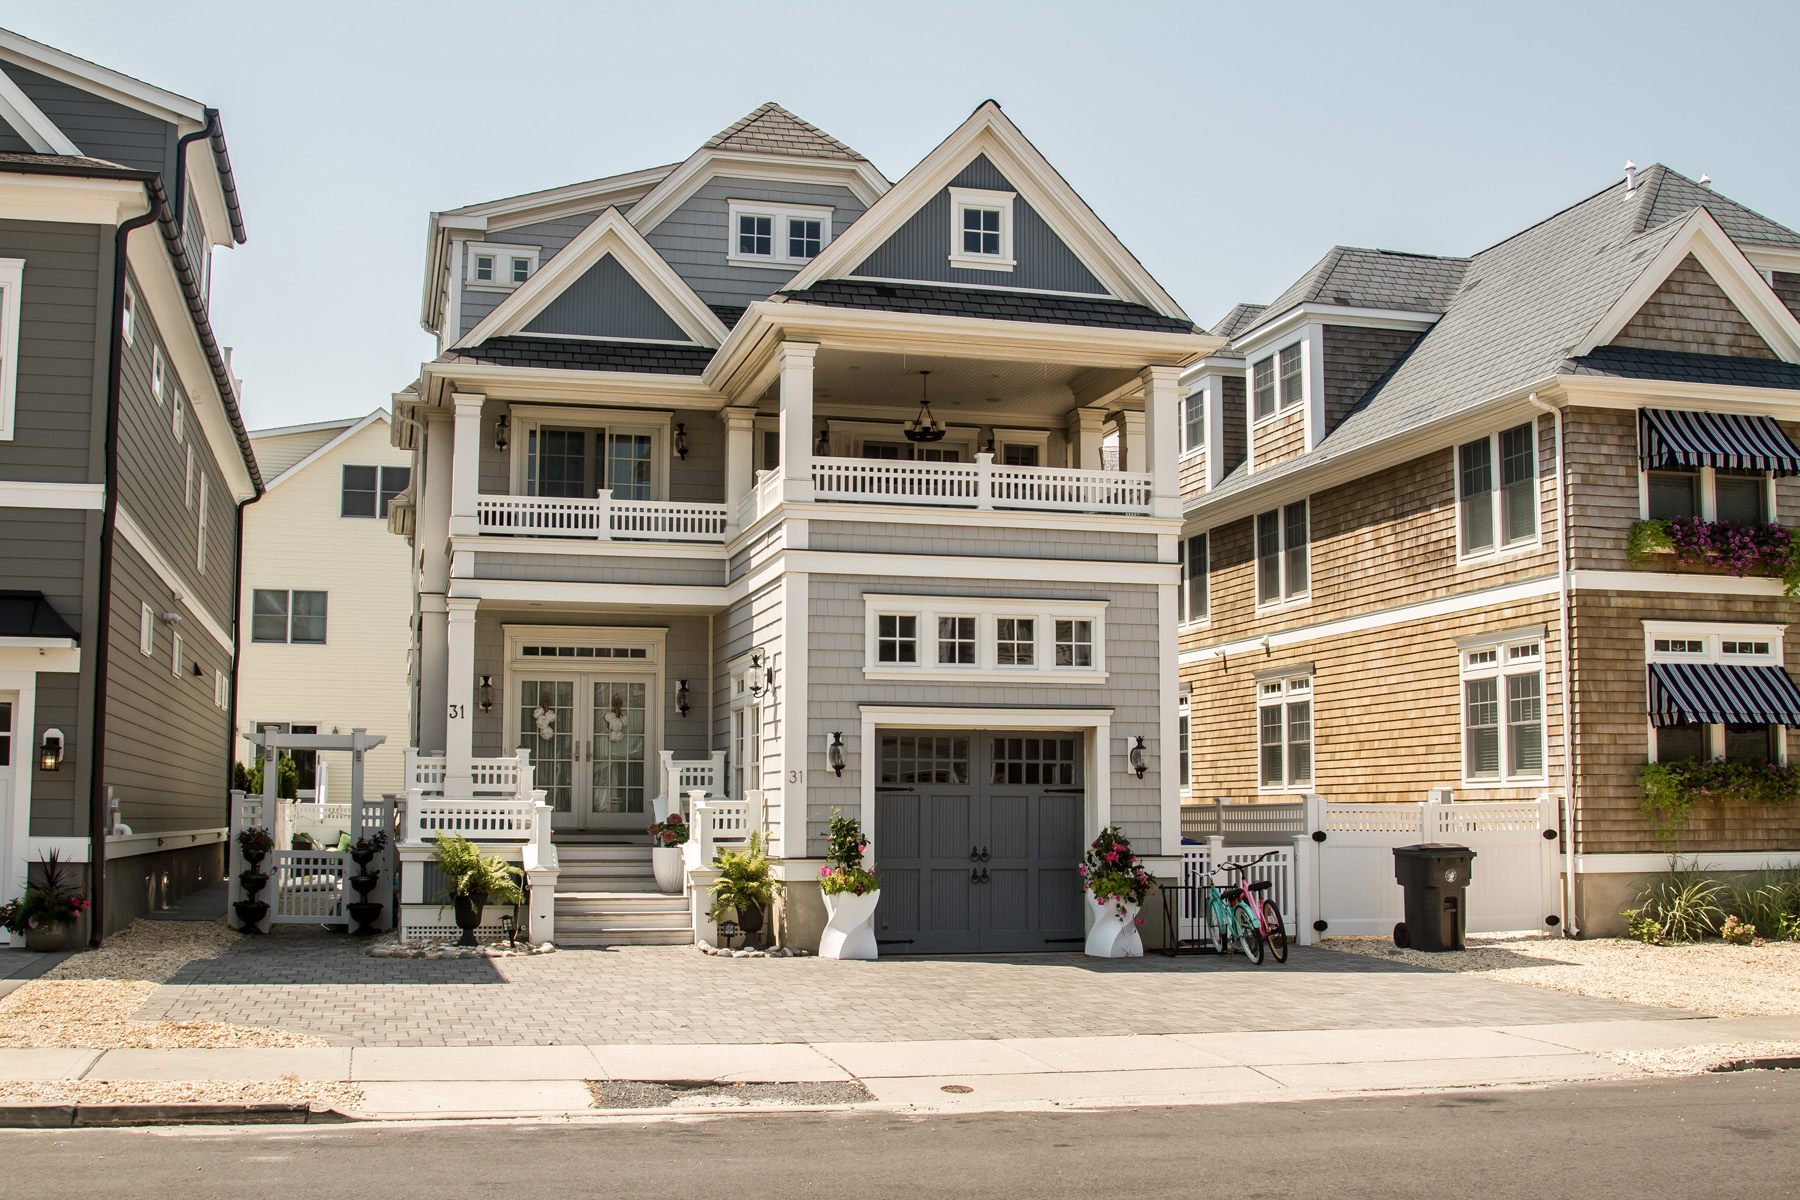 Single Family Homes for Sale at Custom Built Beach Block Home 31 5th Avenue Normandy Beach, New Jersey 08739 United States